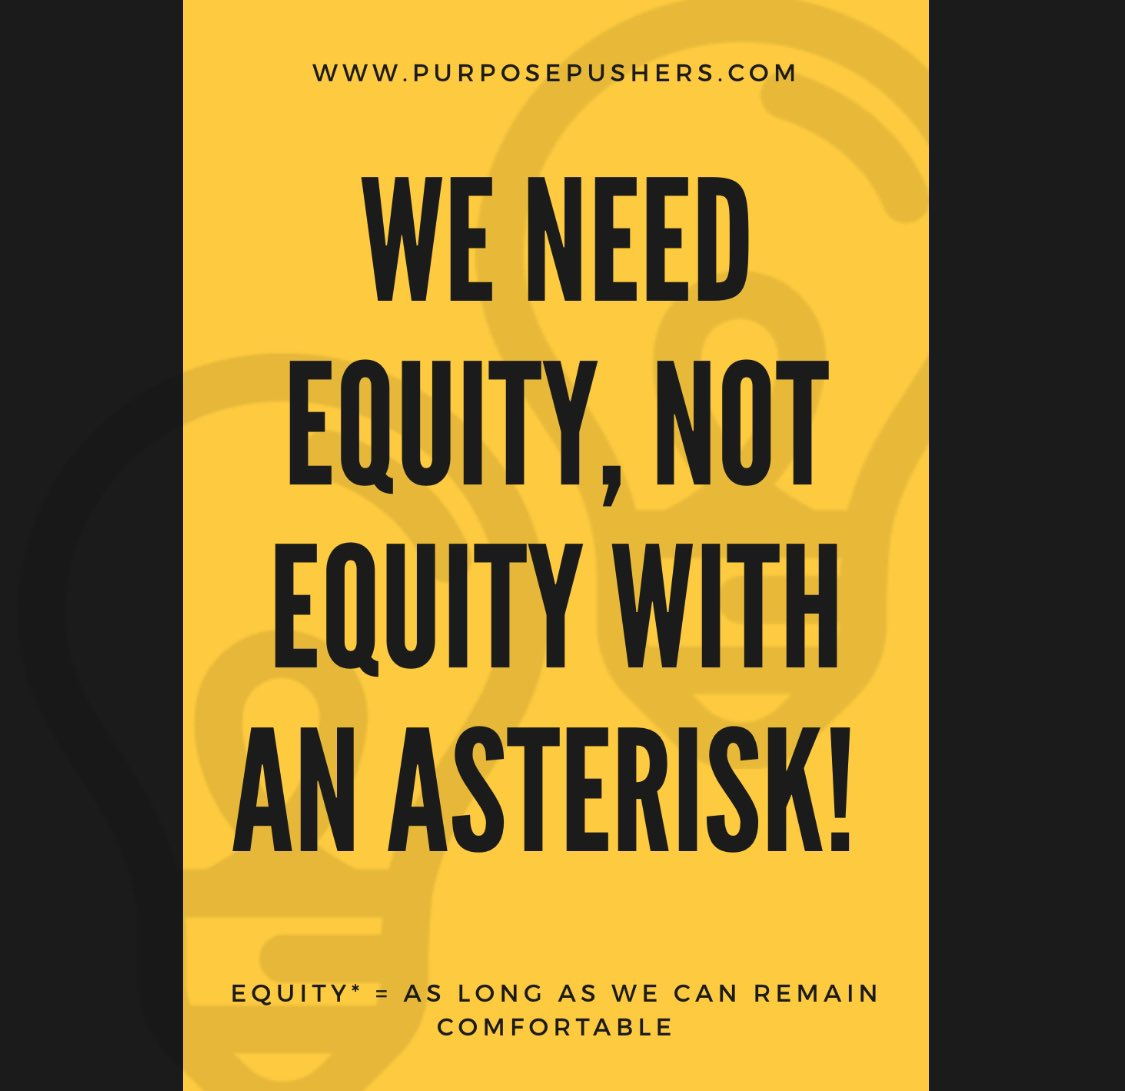 We need EQUITY, not EQUITY with an asterisk. (*) = only if it will allow us to feel comfortable.